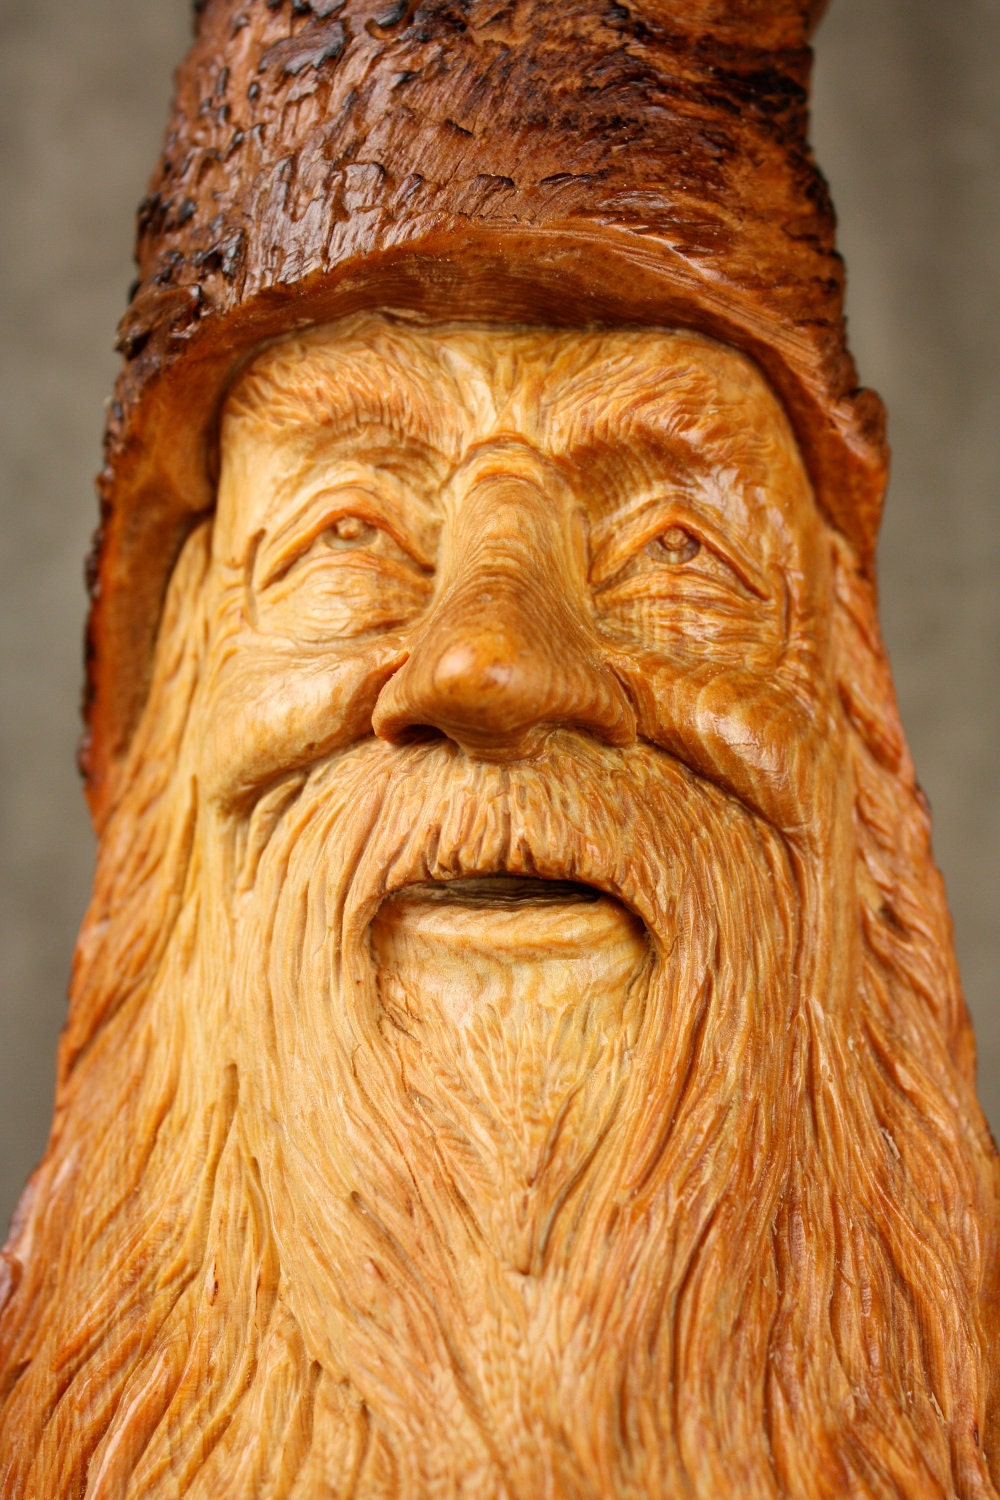 Wood Carving Wood Spirit Carved Elf Wizard Valentines Day